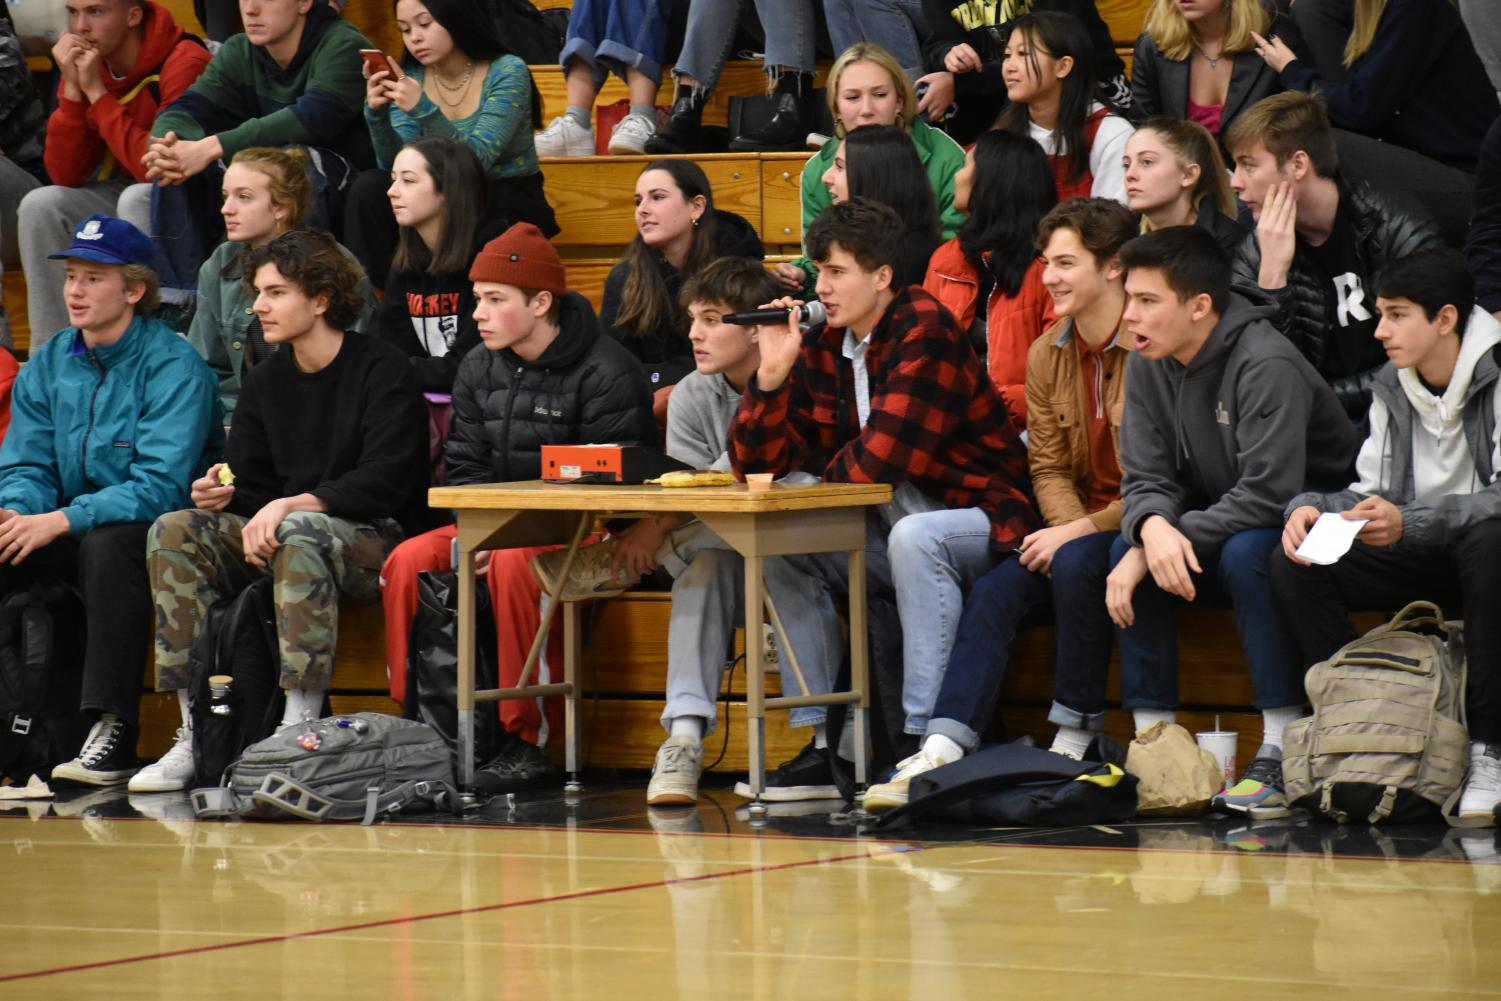 Senior Jake Berry MCs a Hoopfest game while a crowd watches from the bleachers. On Dec. 16, the Redeem Team and No Name team got into a fight, making spectators question whether stricter regulations should be set at Hoopfest.